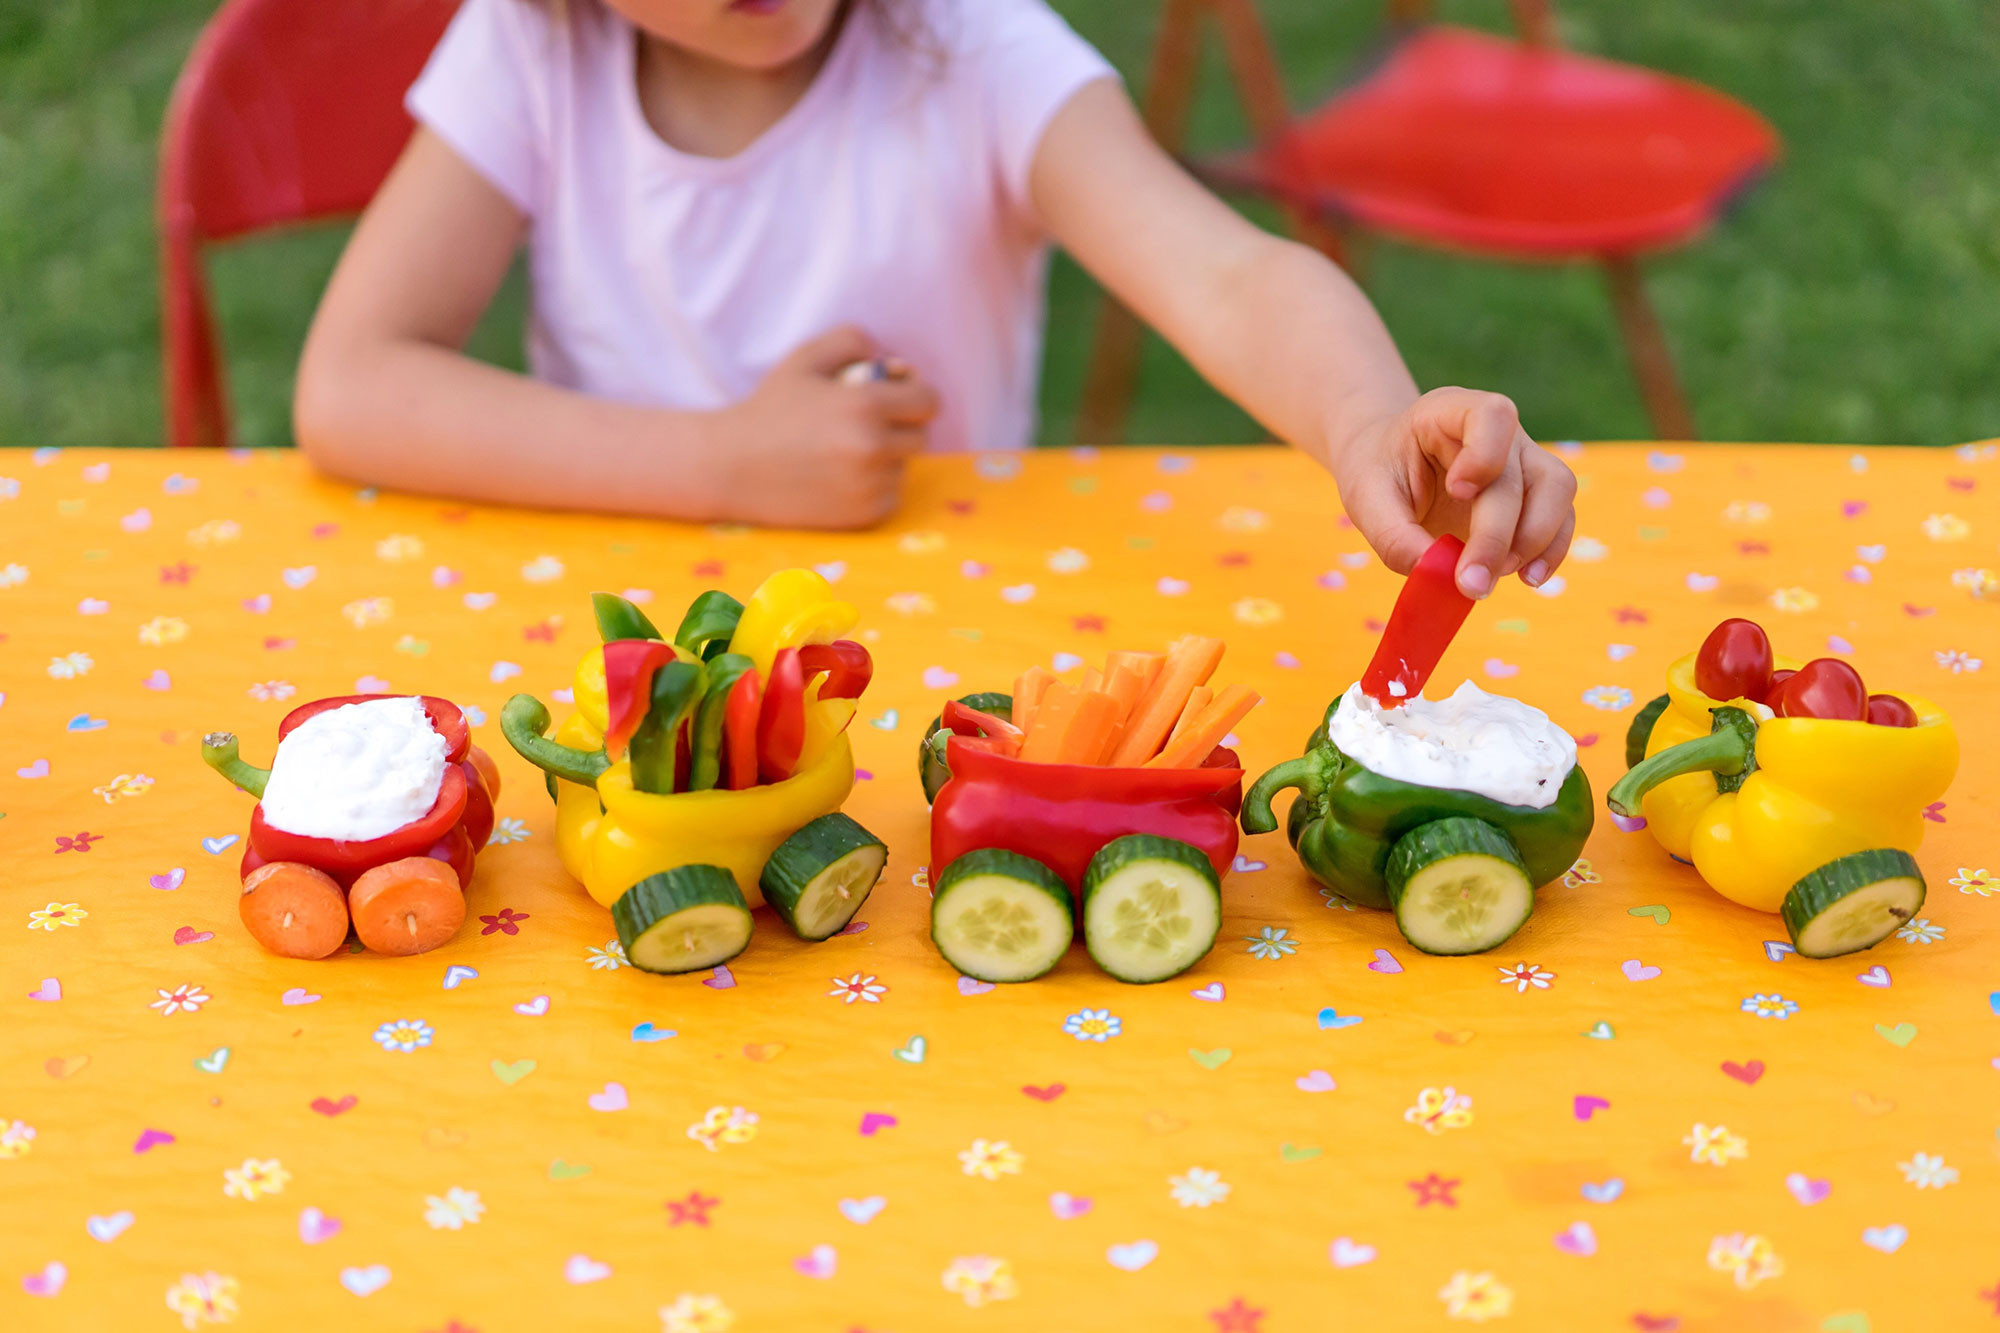 Party Food Ideas For Kids  Healthy Party Food Ideas for Kids That Curb the Sugar Rush